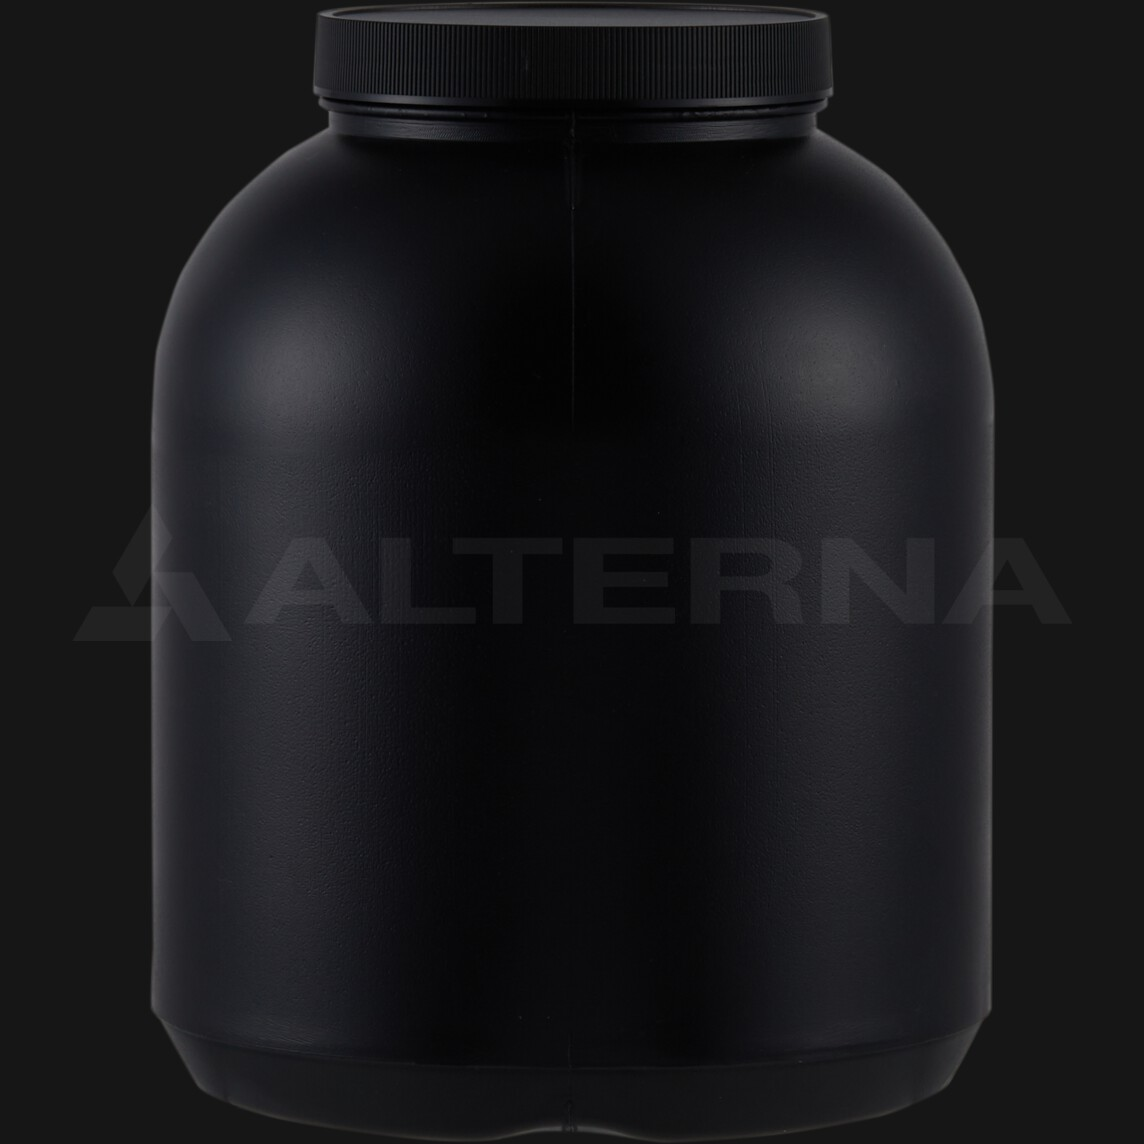 6000 ml HDPE Jar for Protein Powder